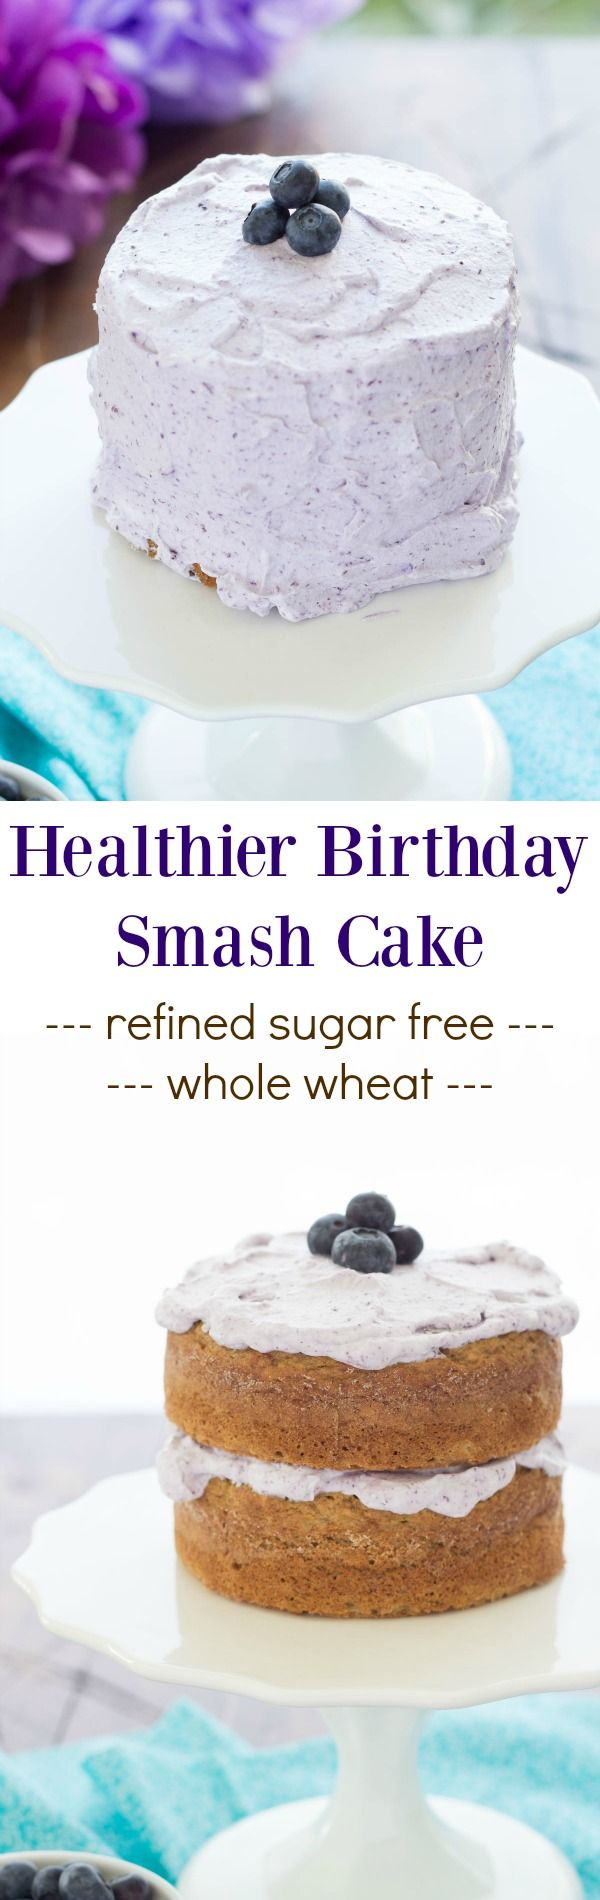 A healthier smash cake recipe made without butter or refined